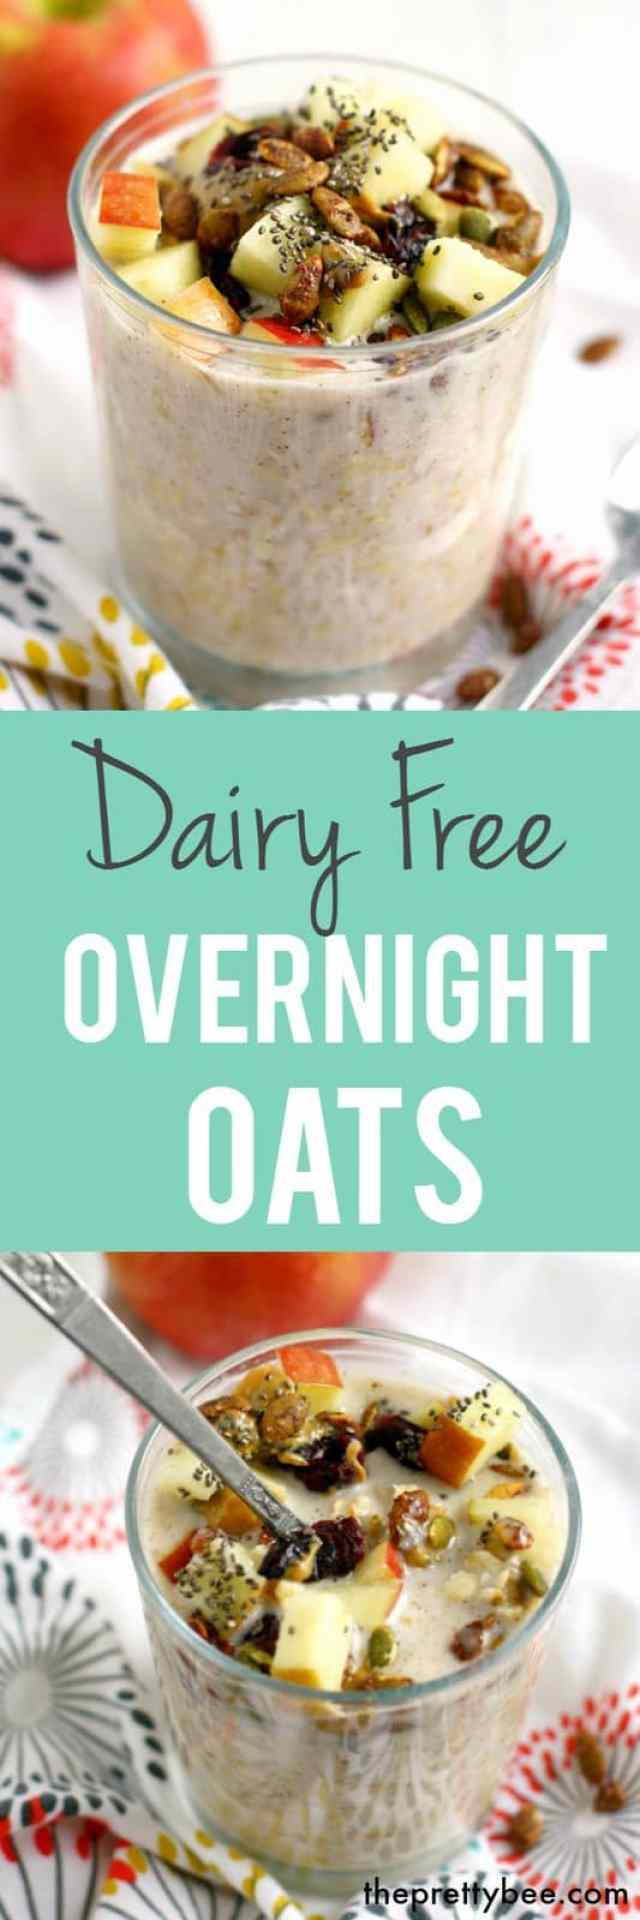 Dairy free overnight oatmeal is topped with pumpkin seeds, cranberries, apple and more to make a tasty breakfast!